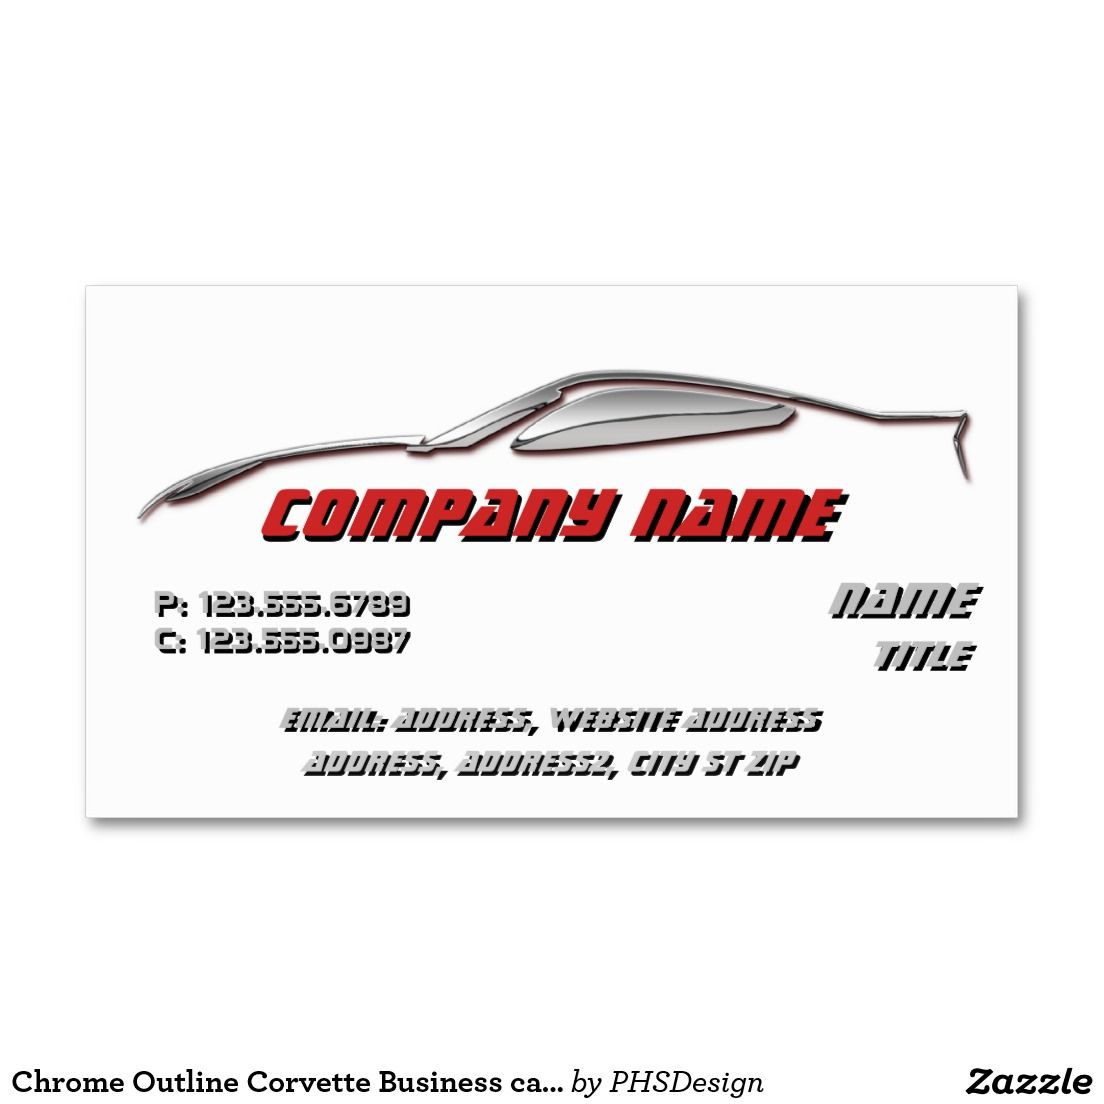 Chrome outline corvette business cards business card templates chrome outline corvette business cards colourmoves